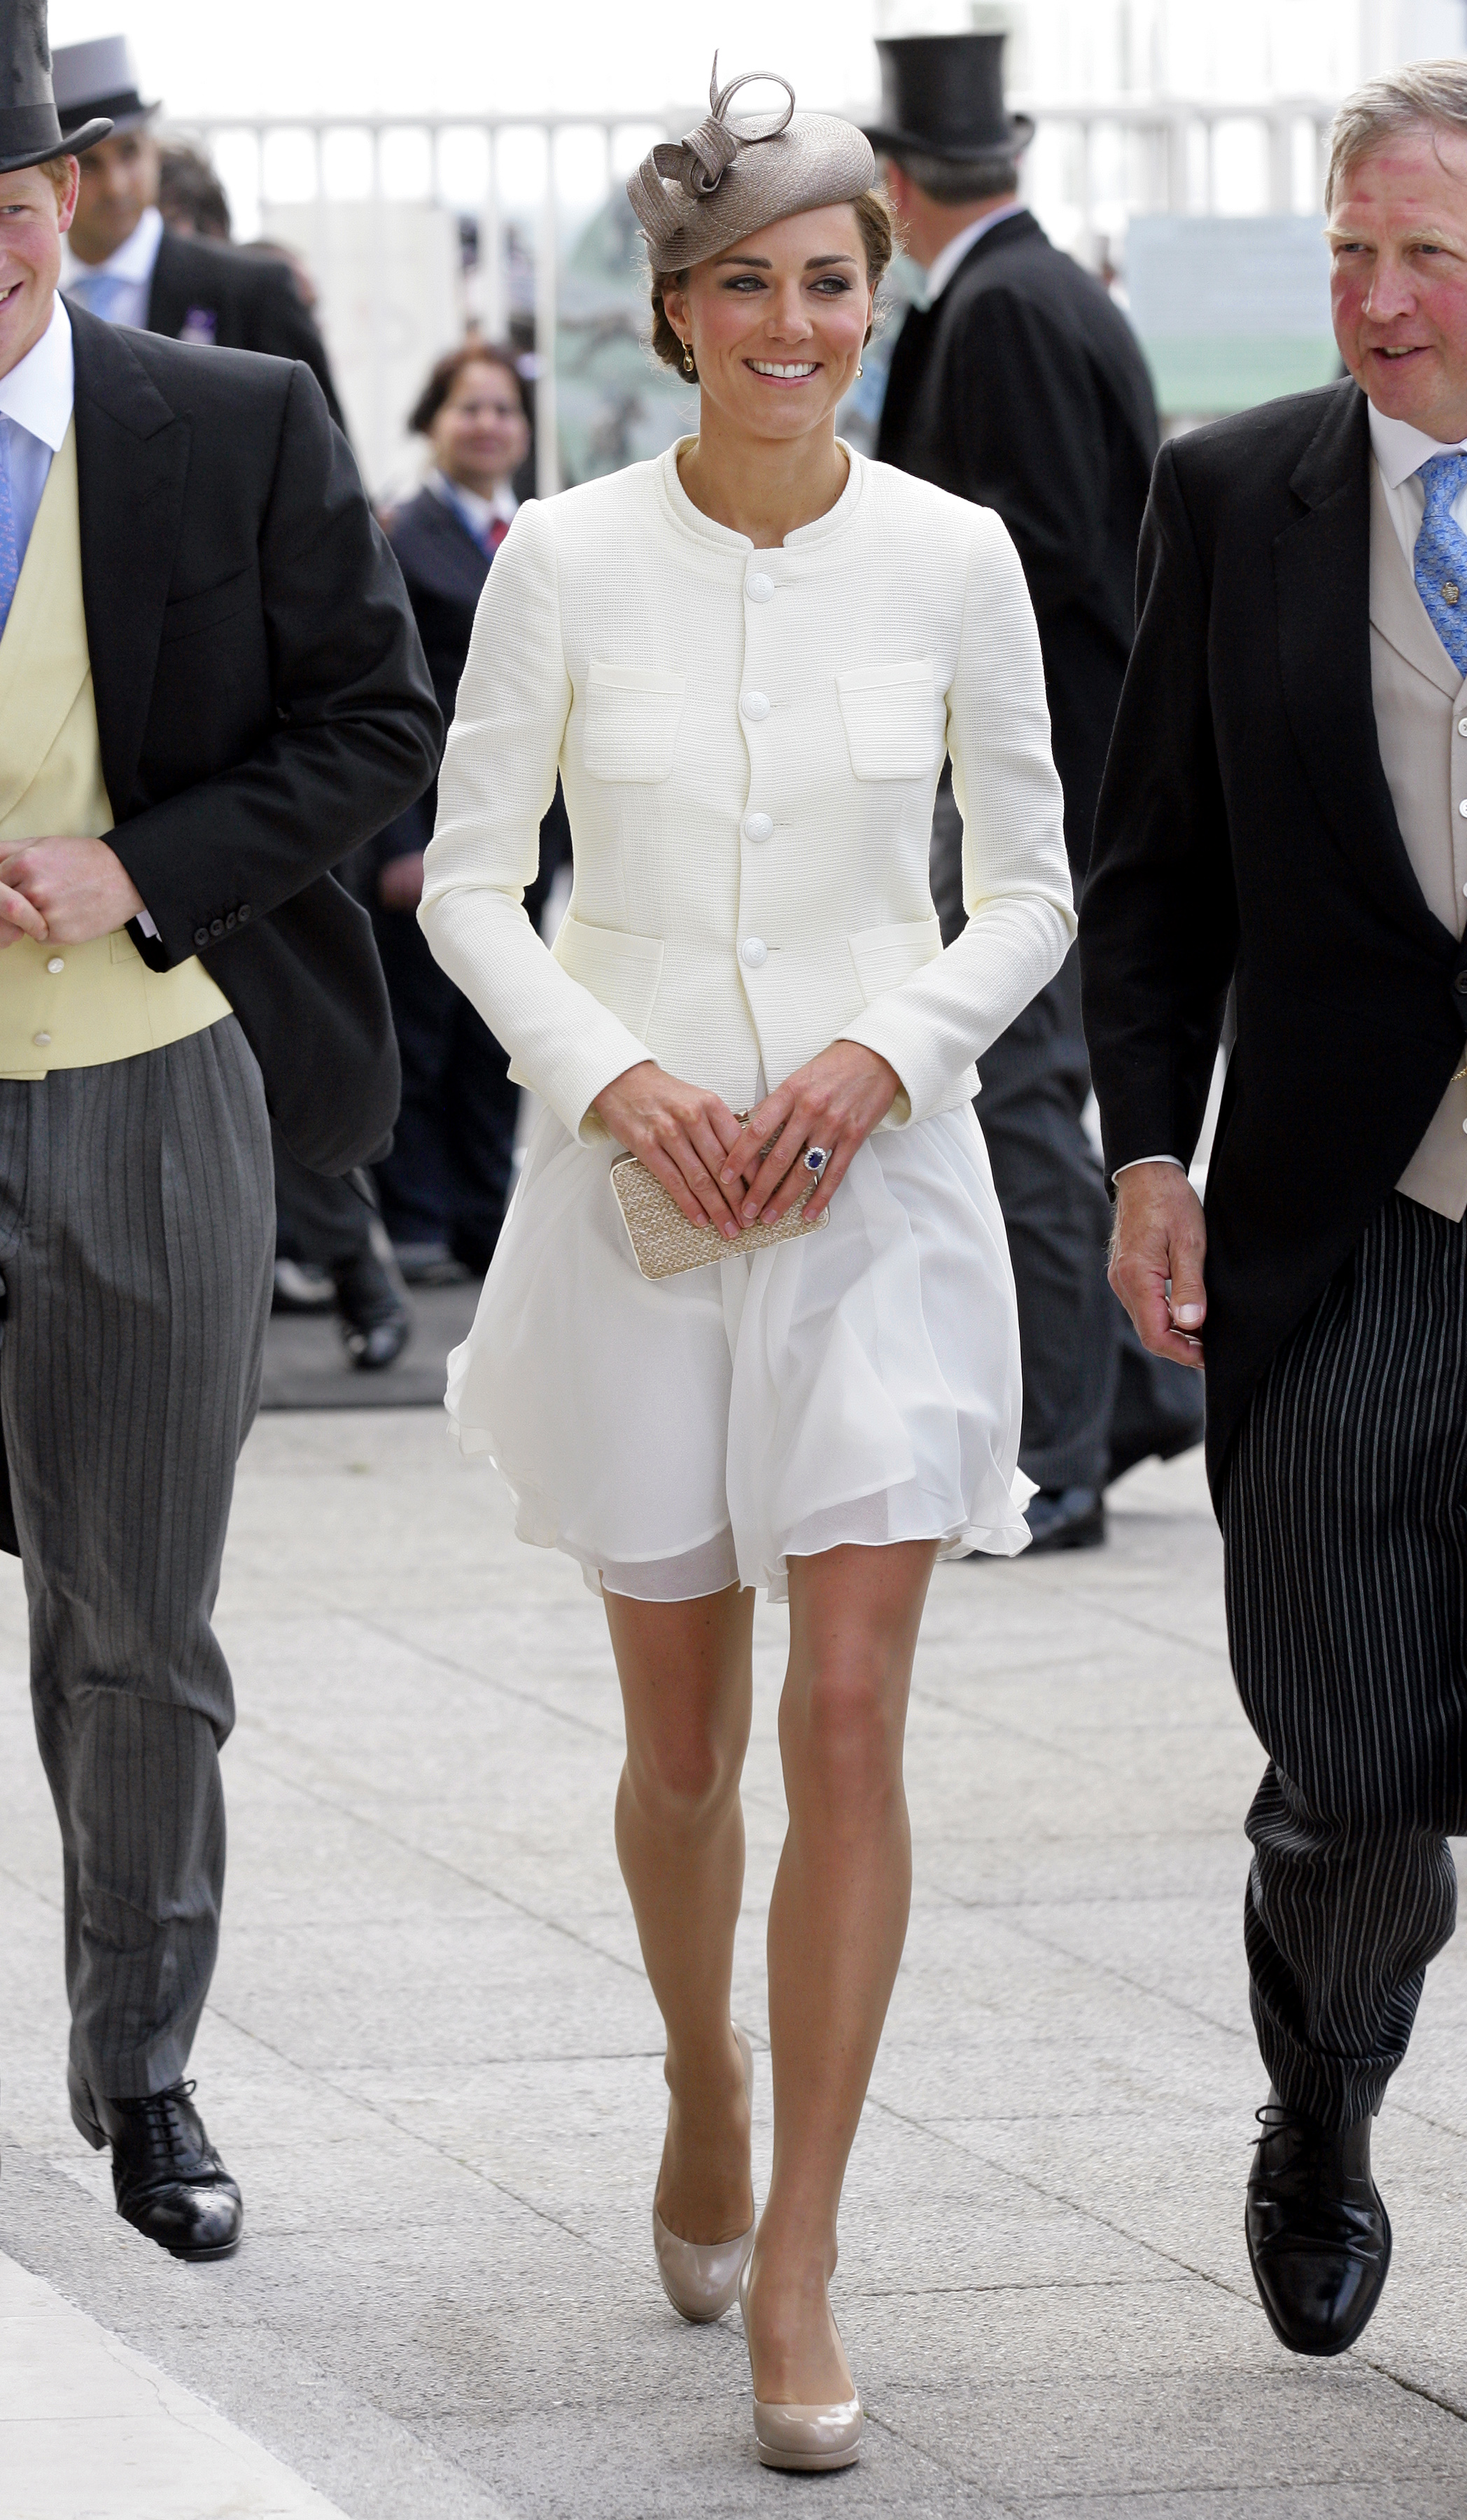 <strong>Racy Attire</strong>                                   The Duchess wore a Reiss dress under a Joseph jacket to a Derby festival in Epsom, England, on June 4, 2011.